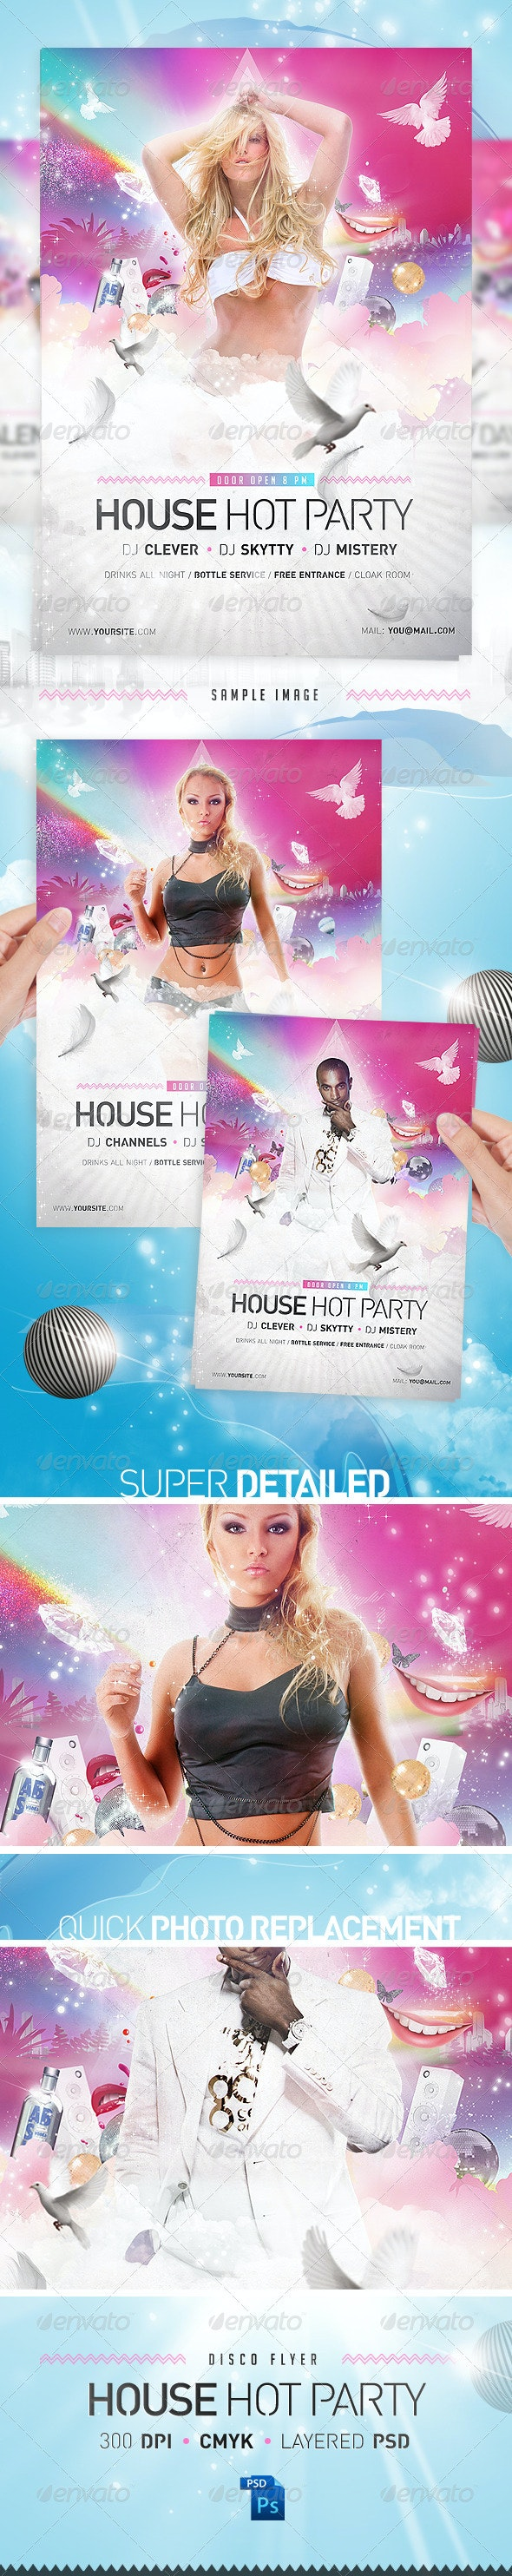 House Party Disco Flyer Template - Clubs & Parties Events